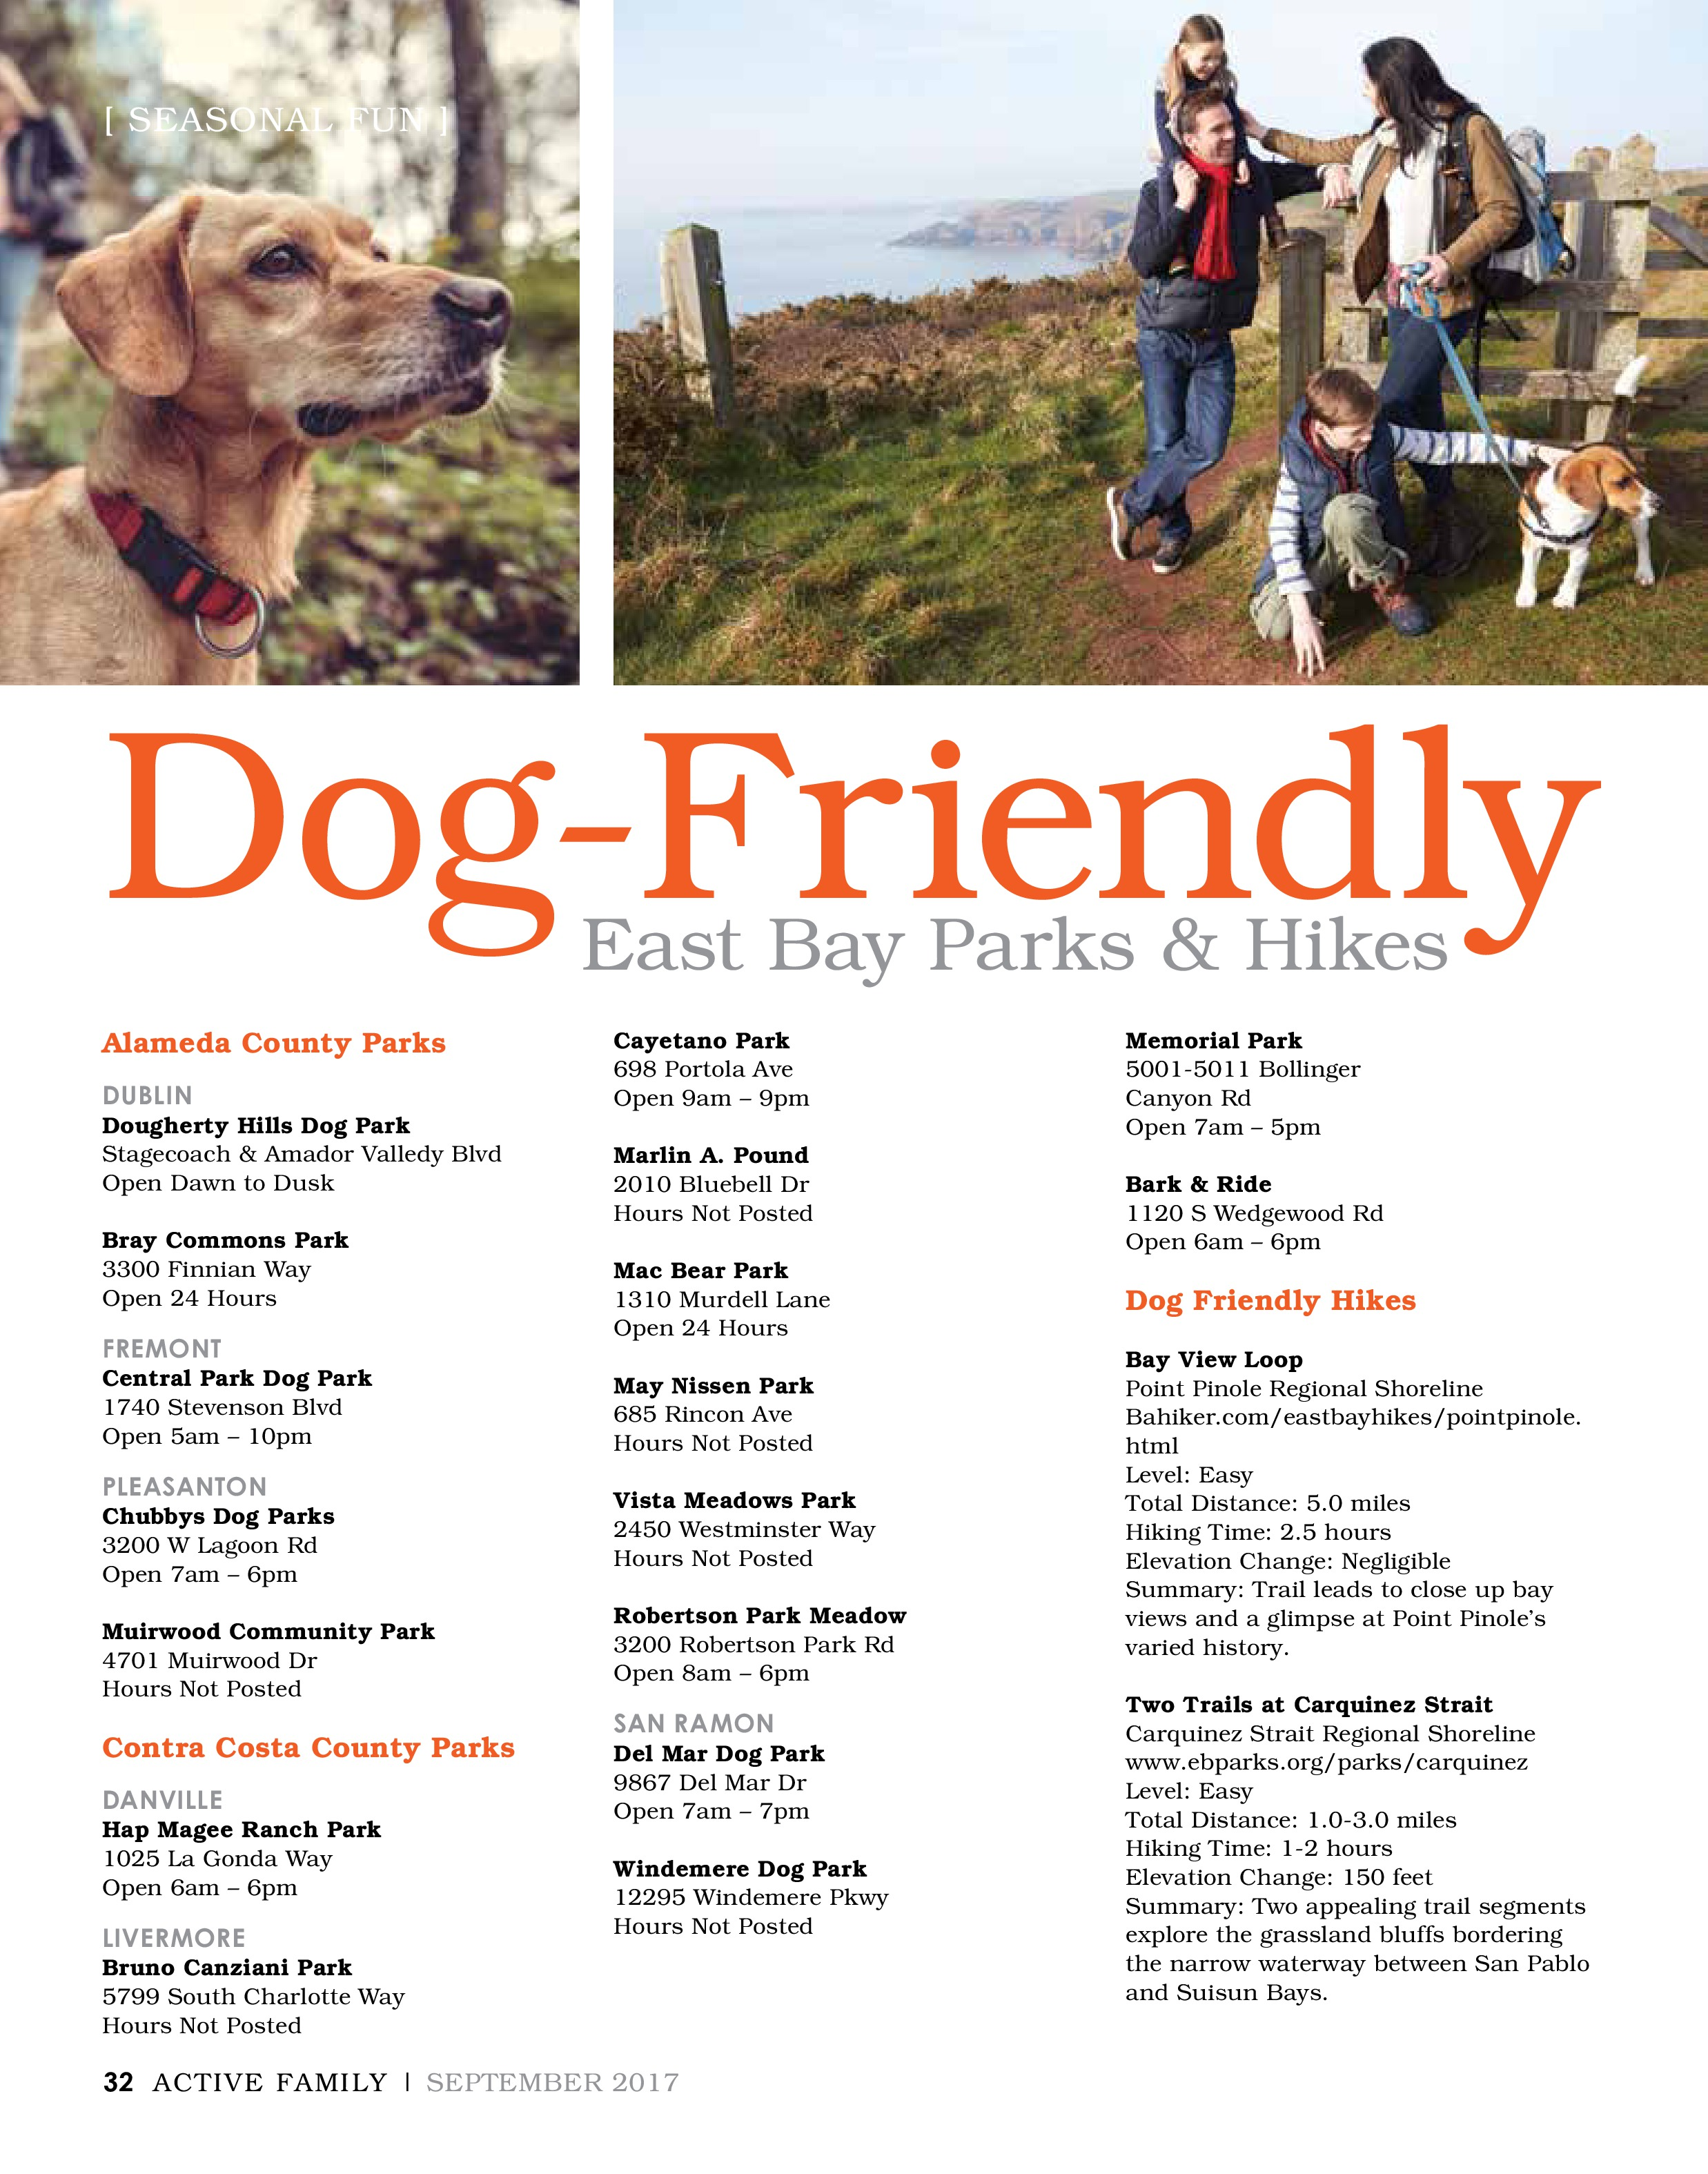 Dog Friendly Hikes Maui